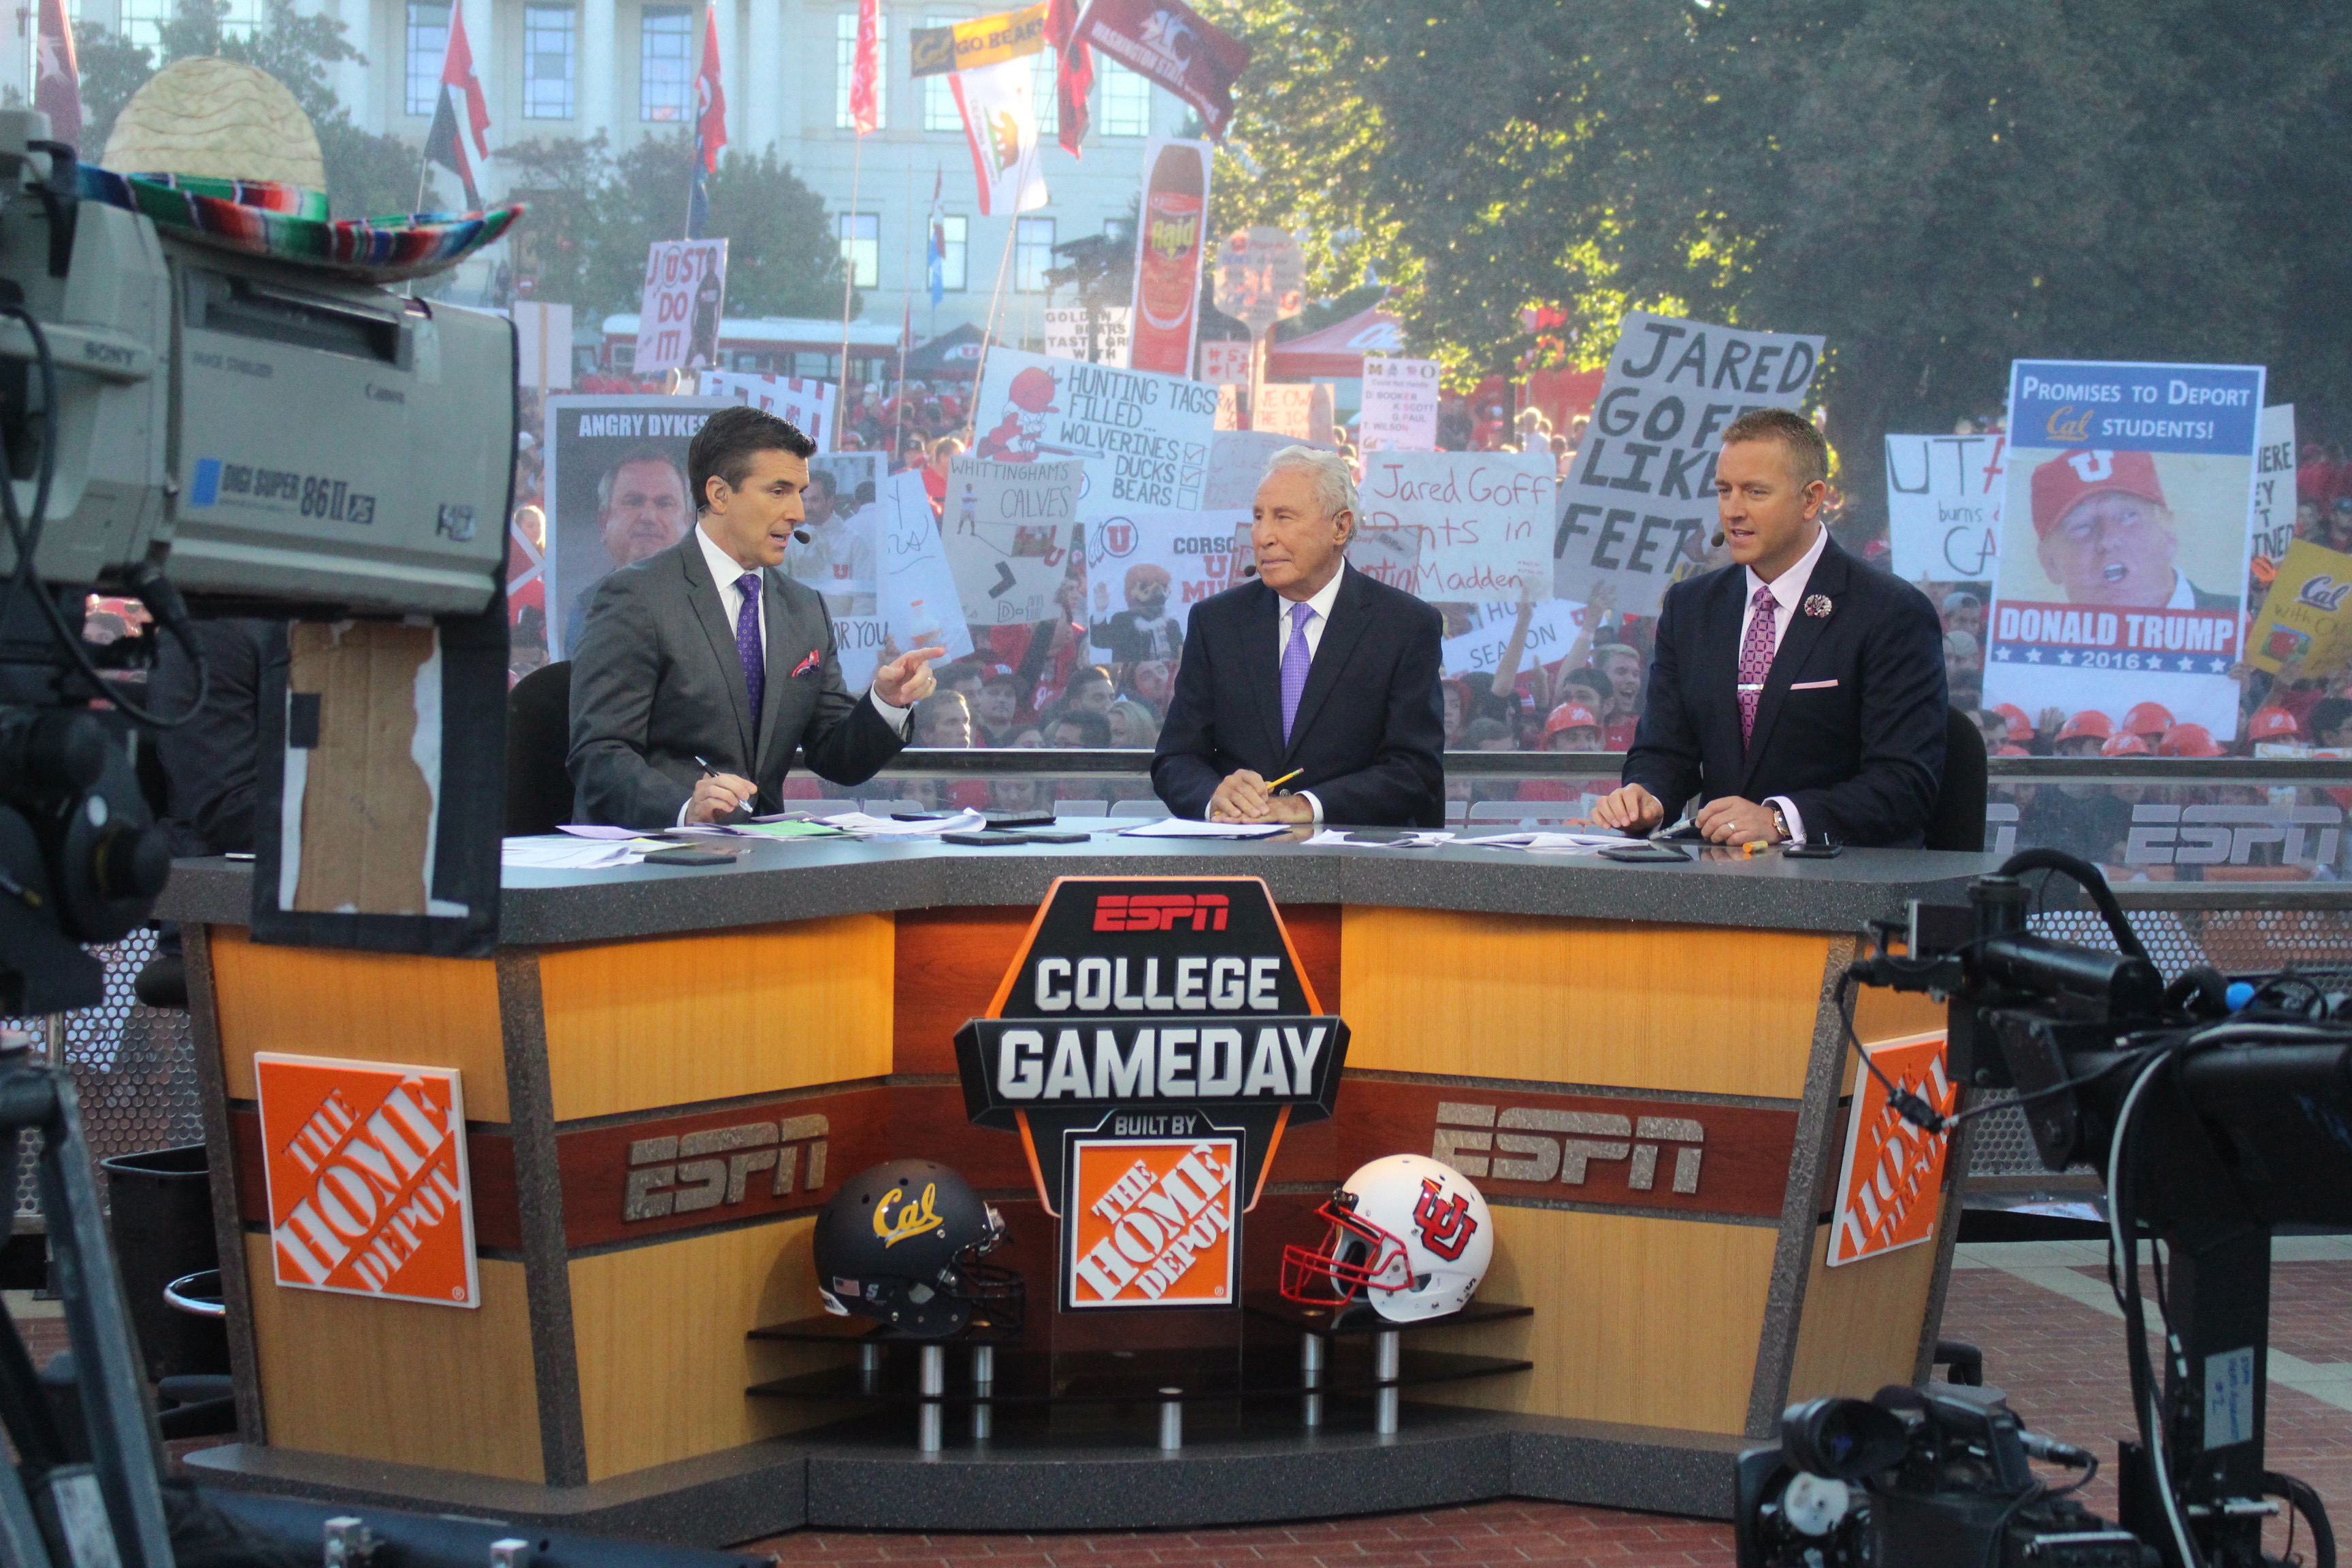 college gameday final fox sports ncaaf